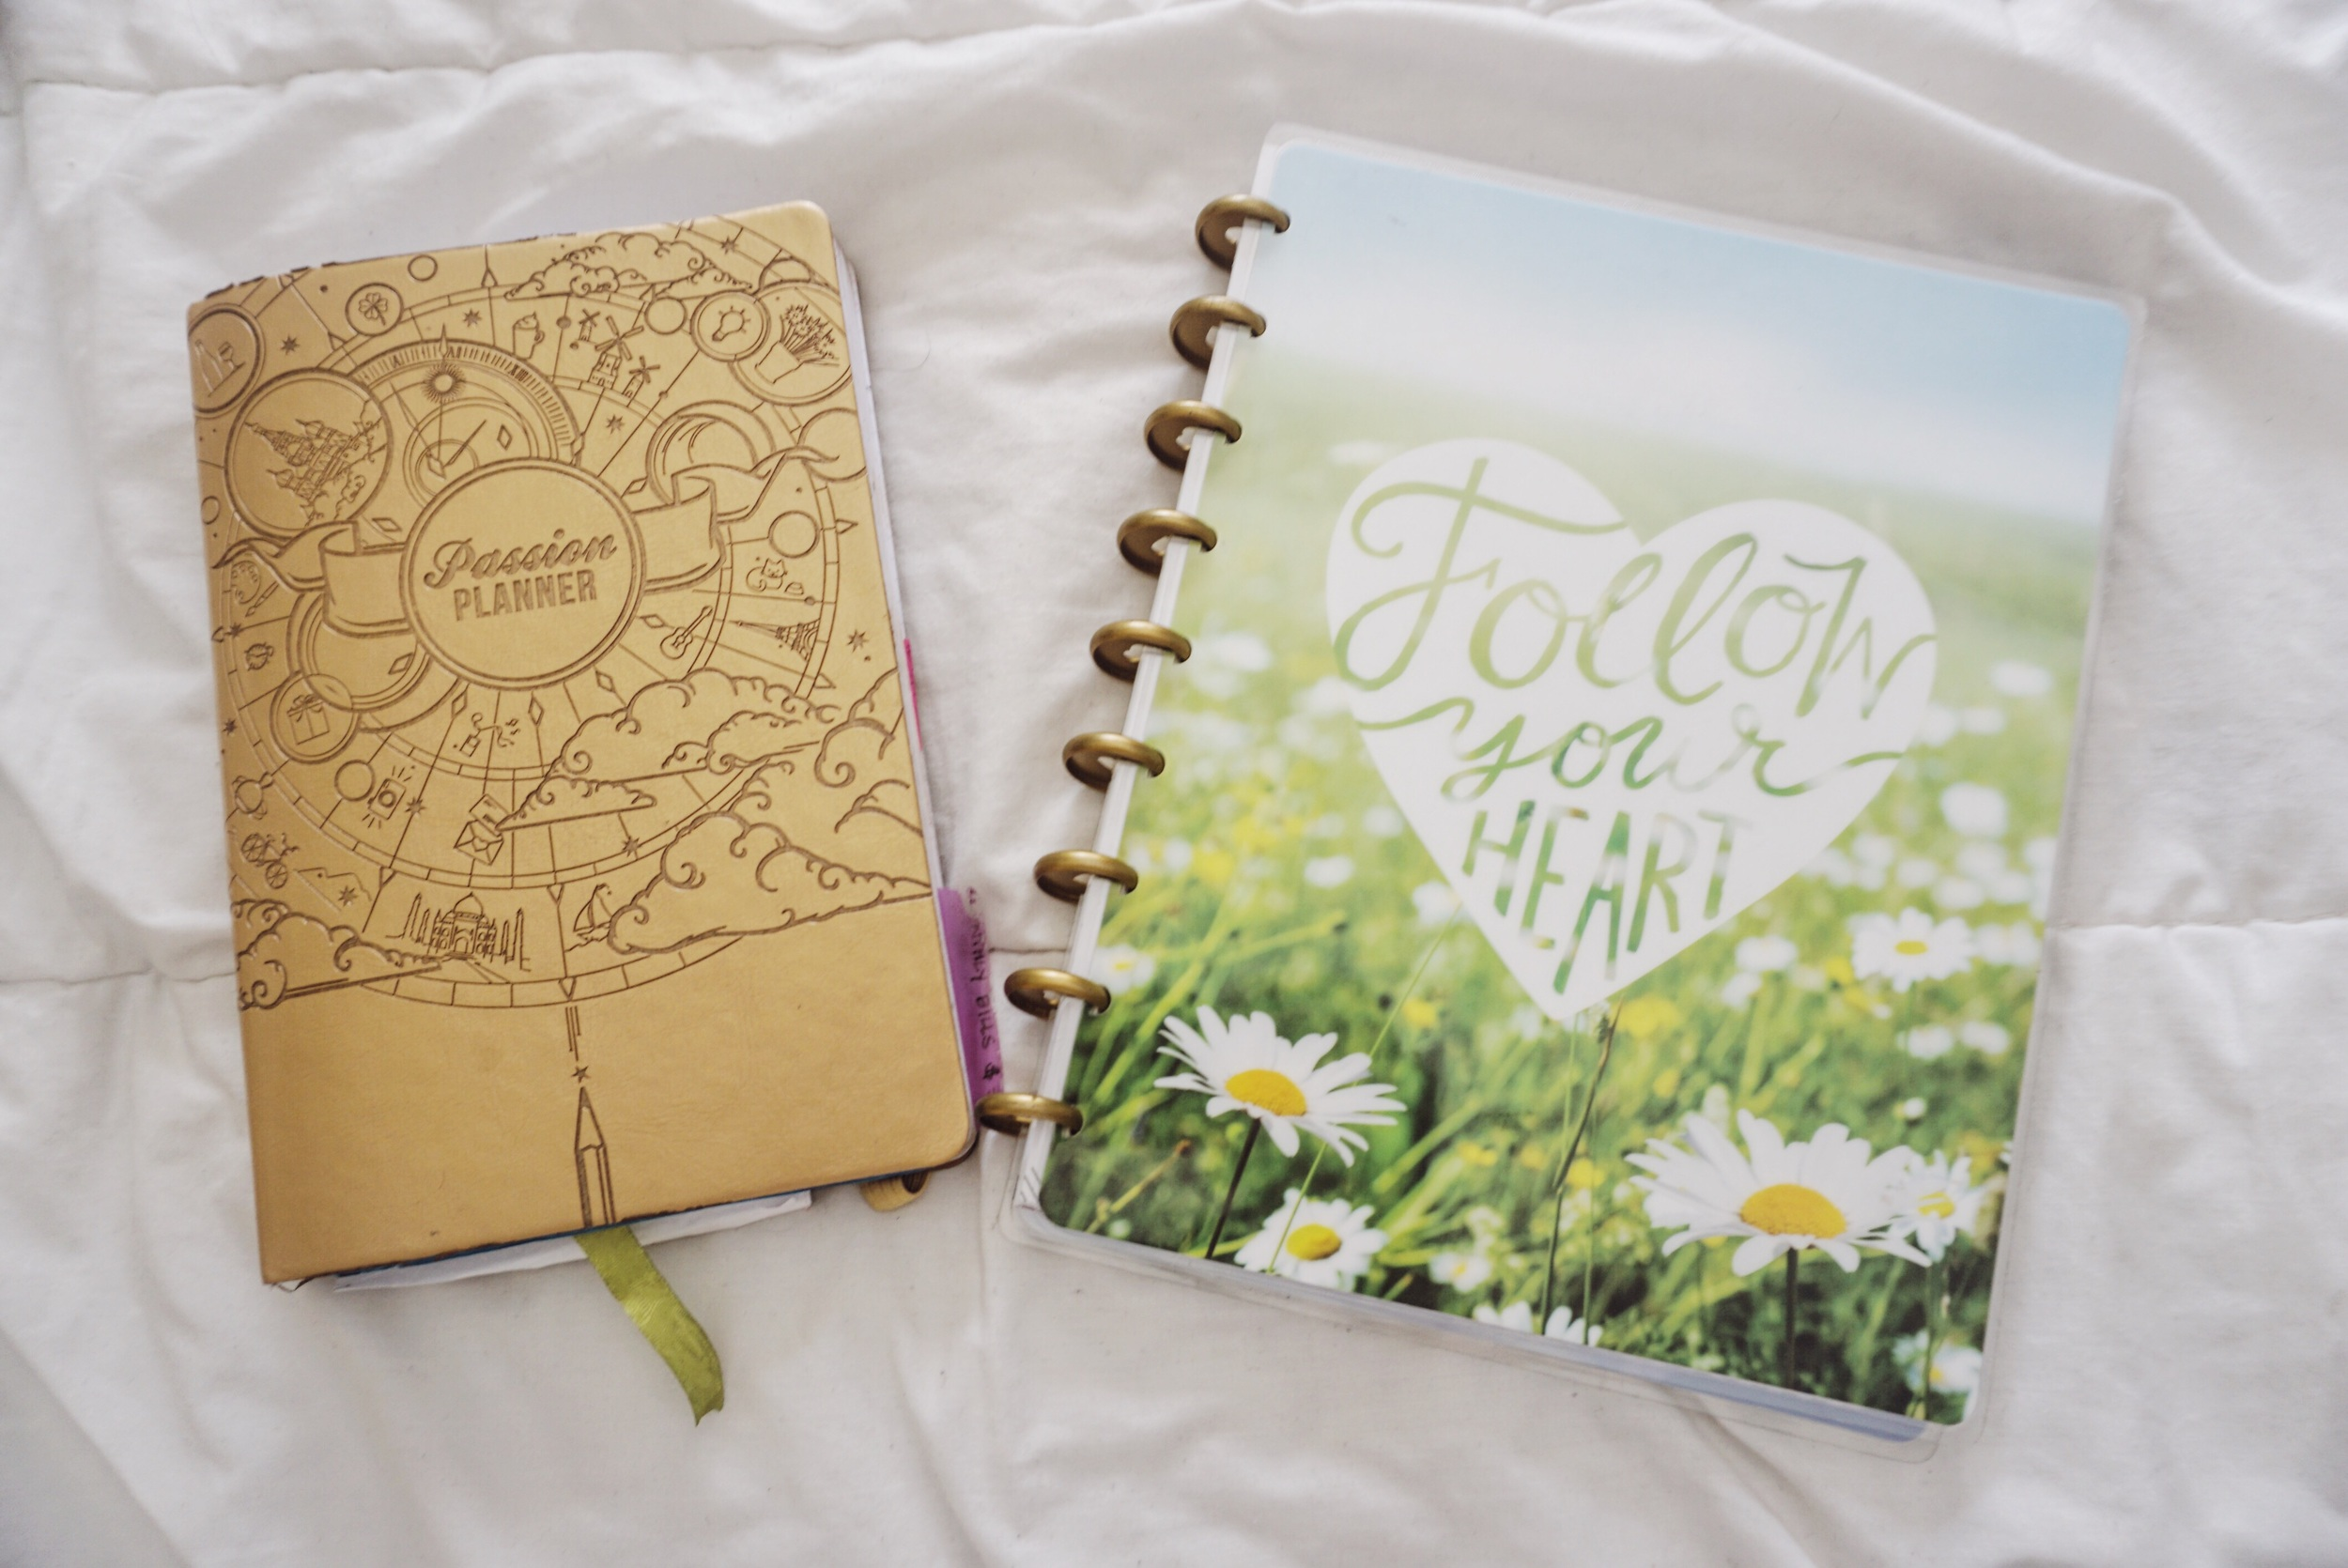 Passion Planner and The Happy Planner. (The Happy Planner is the Picture Quote style, and shown with mini disks)